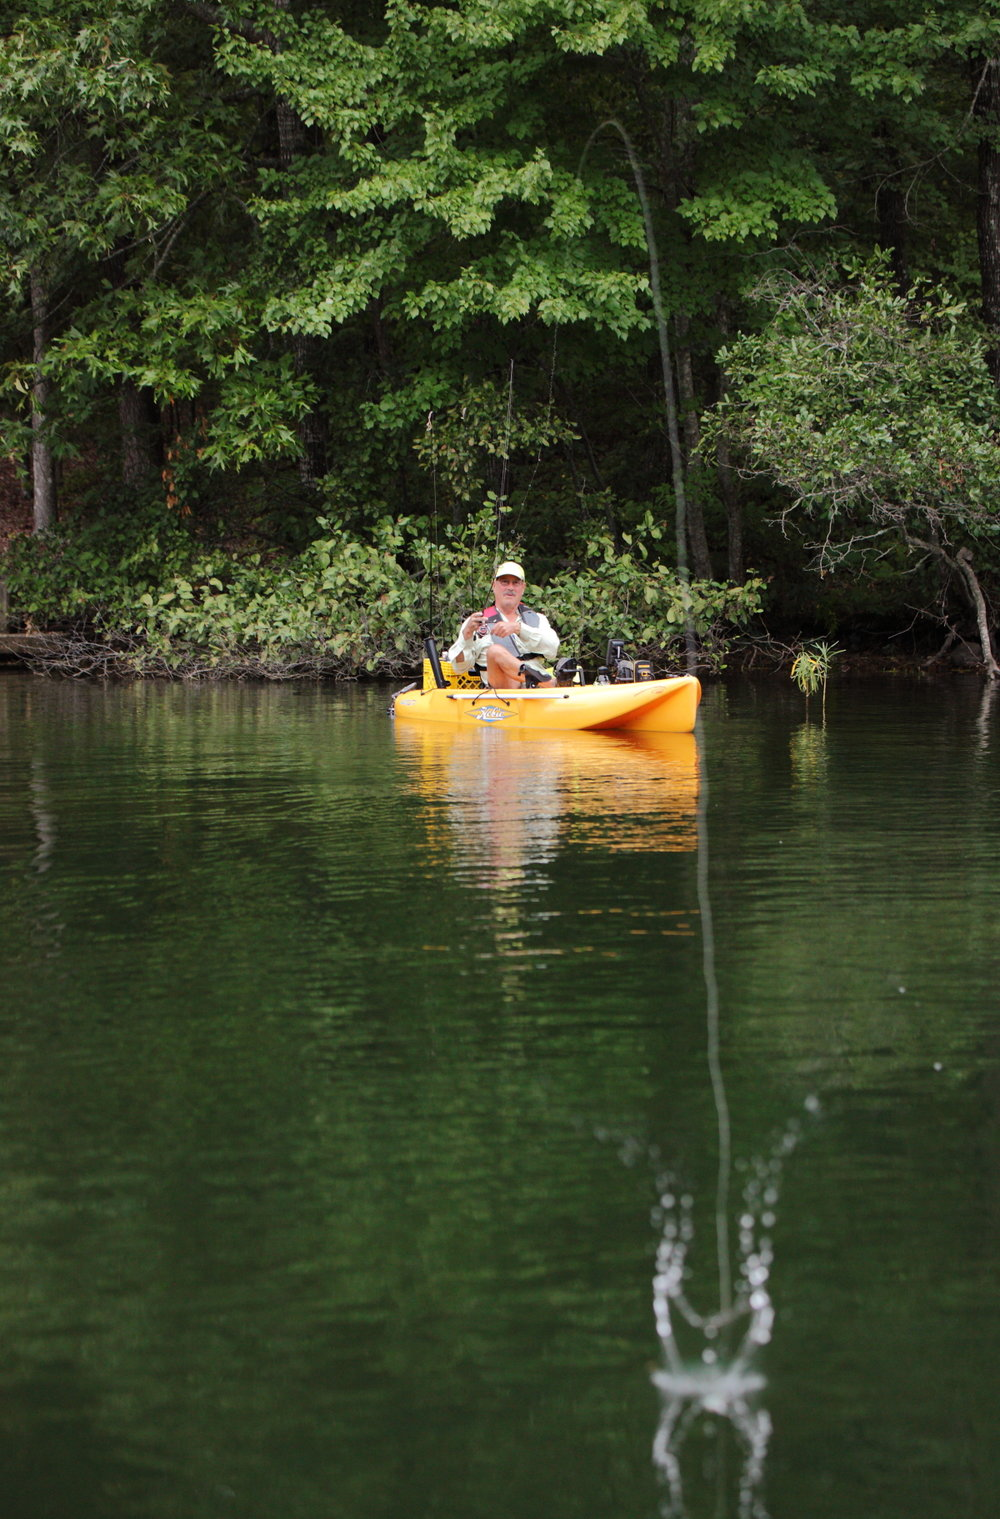 Arkansas resident Peter Trabant, avid kayak fisherman, casts his line into Lake Coronado in Hot Springs Village.